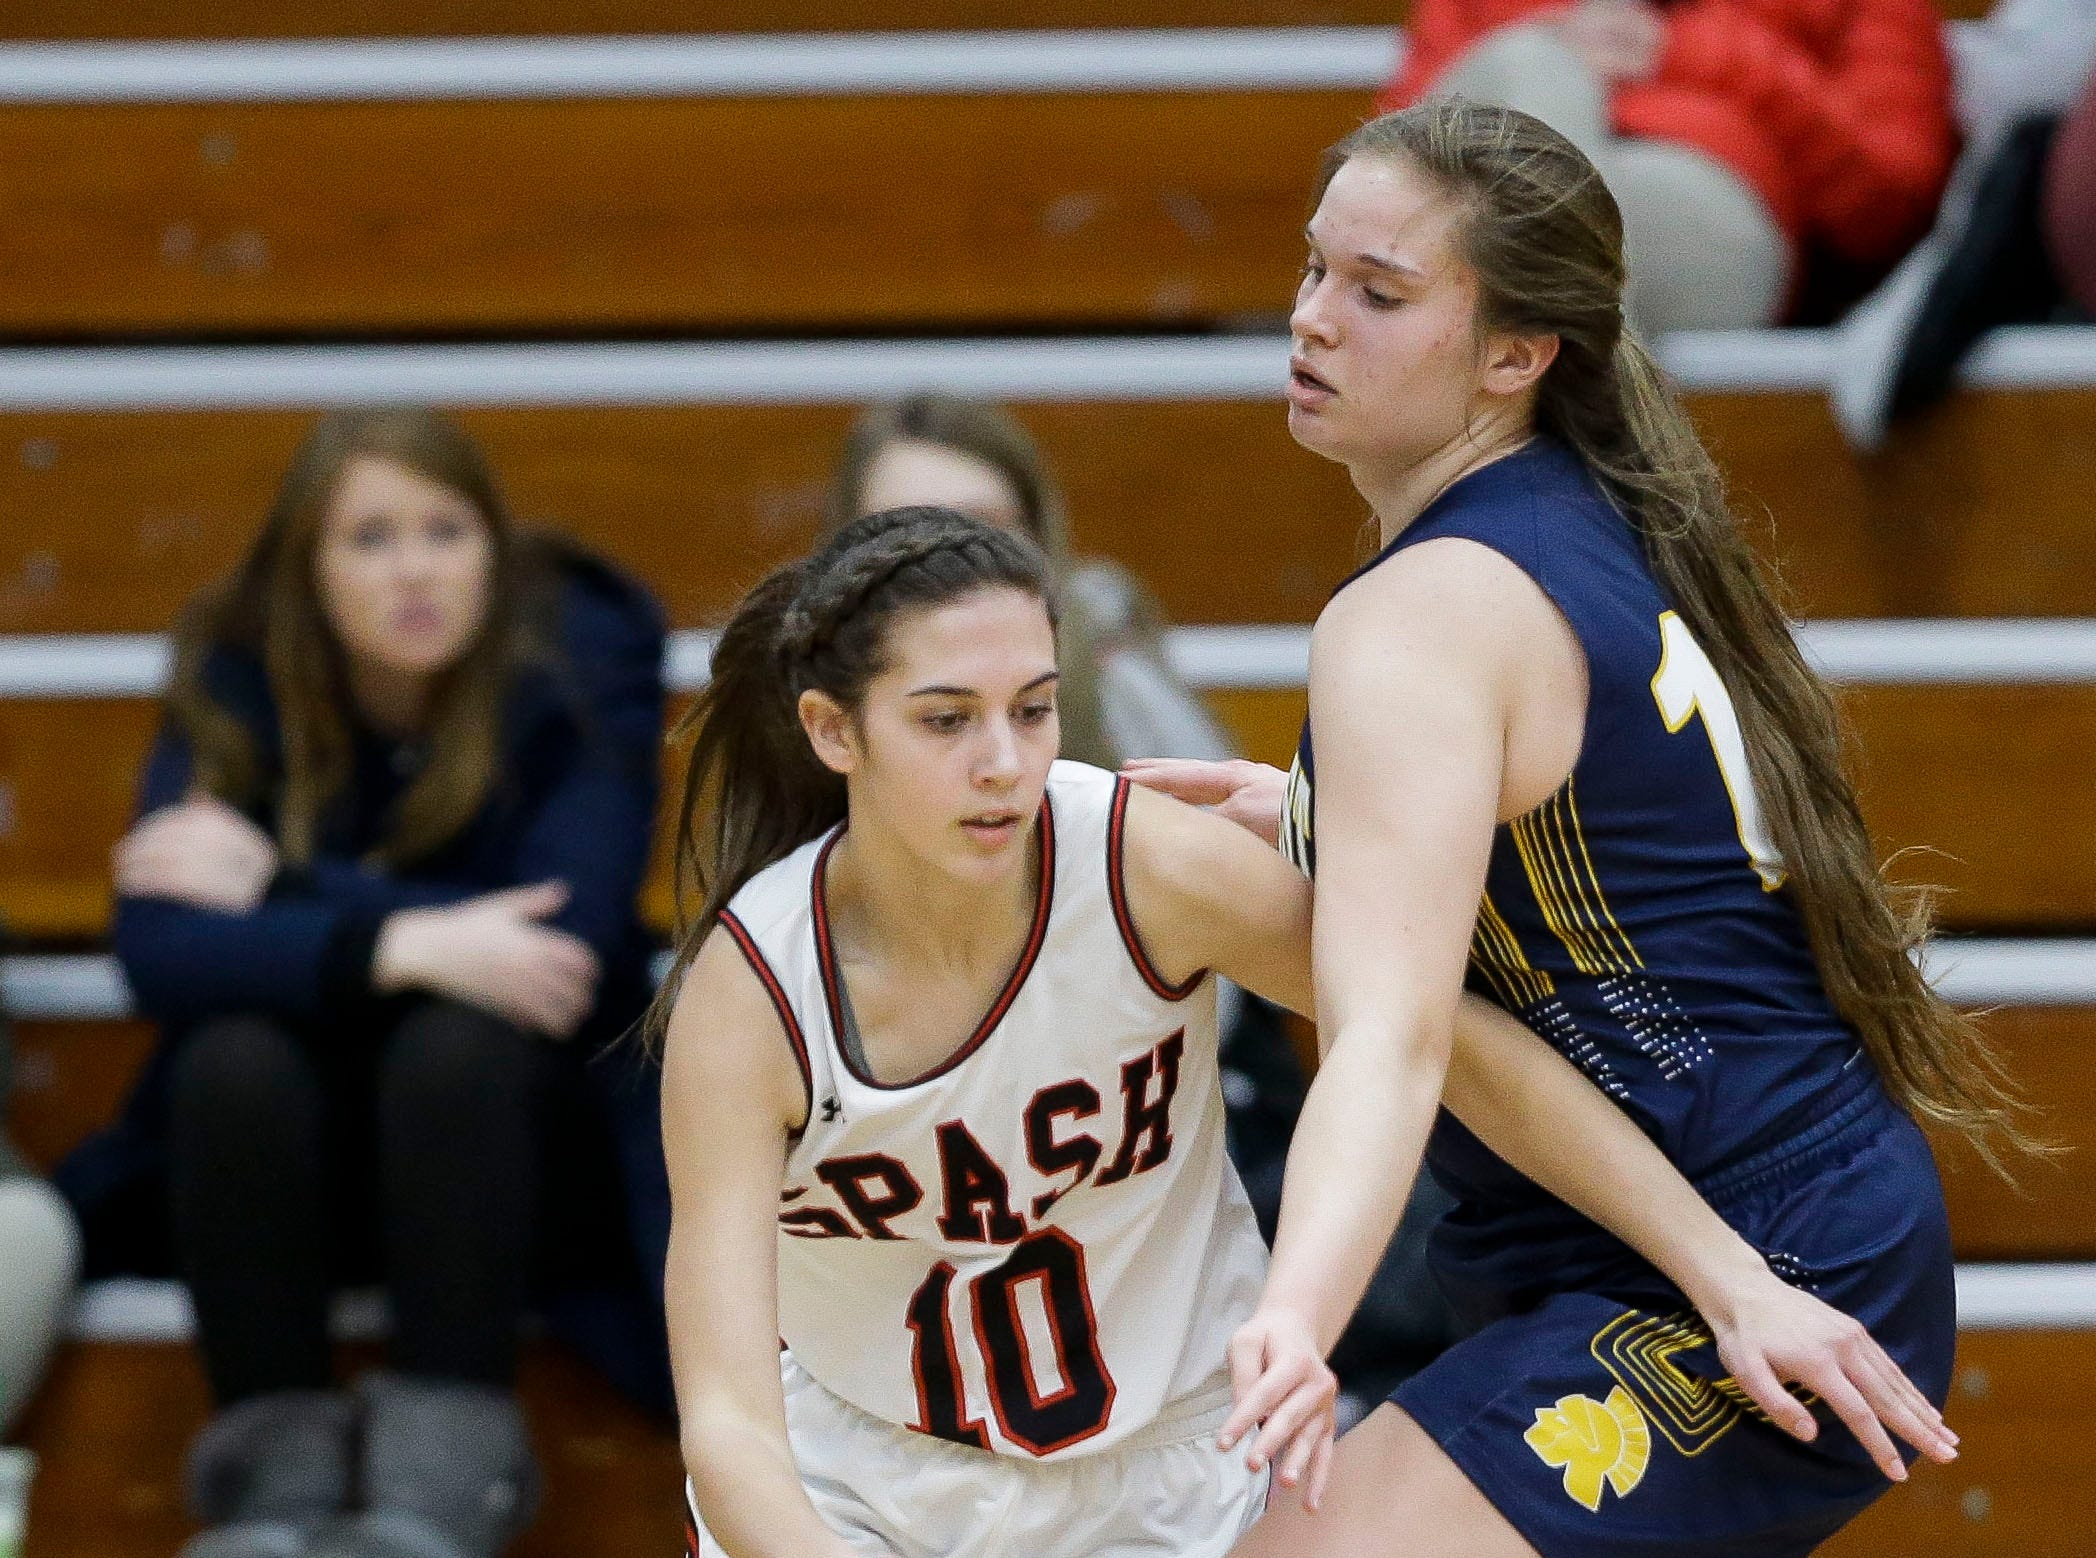 SPASH's Alyssa Standifer (10) is fouled by Wausau West's Anna Cunningham (14) on Thursday, February 14, 2019, at SPASH in Stevens Point, Wis.Tork Mason/USA TODAY NETWORK-Wisconsin